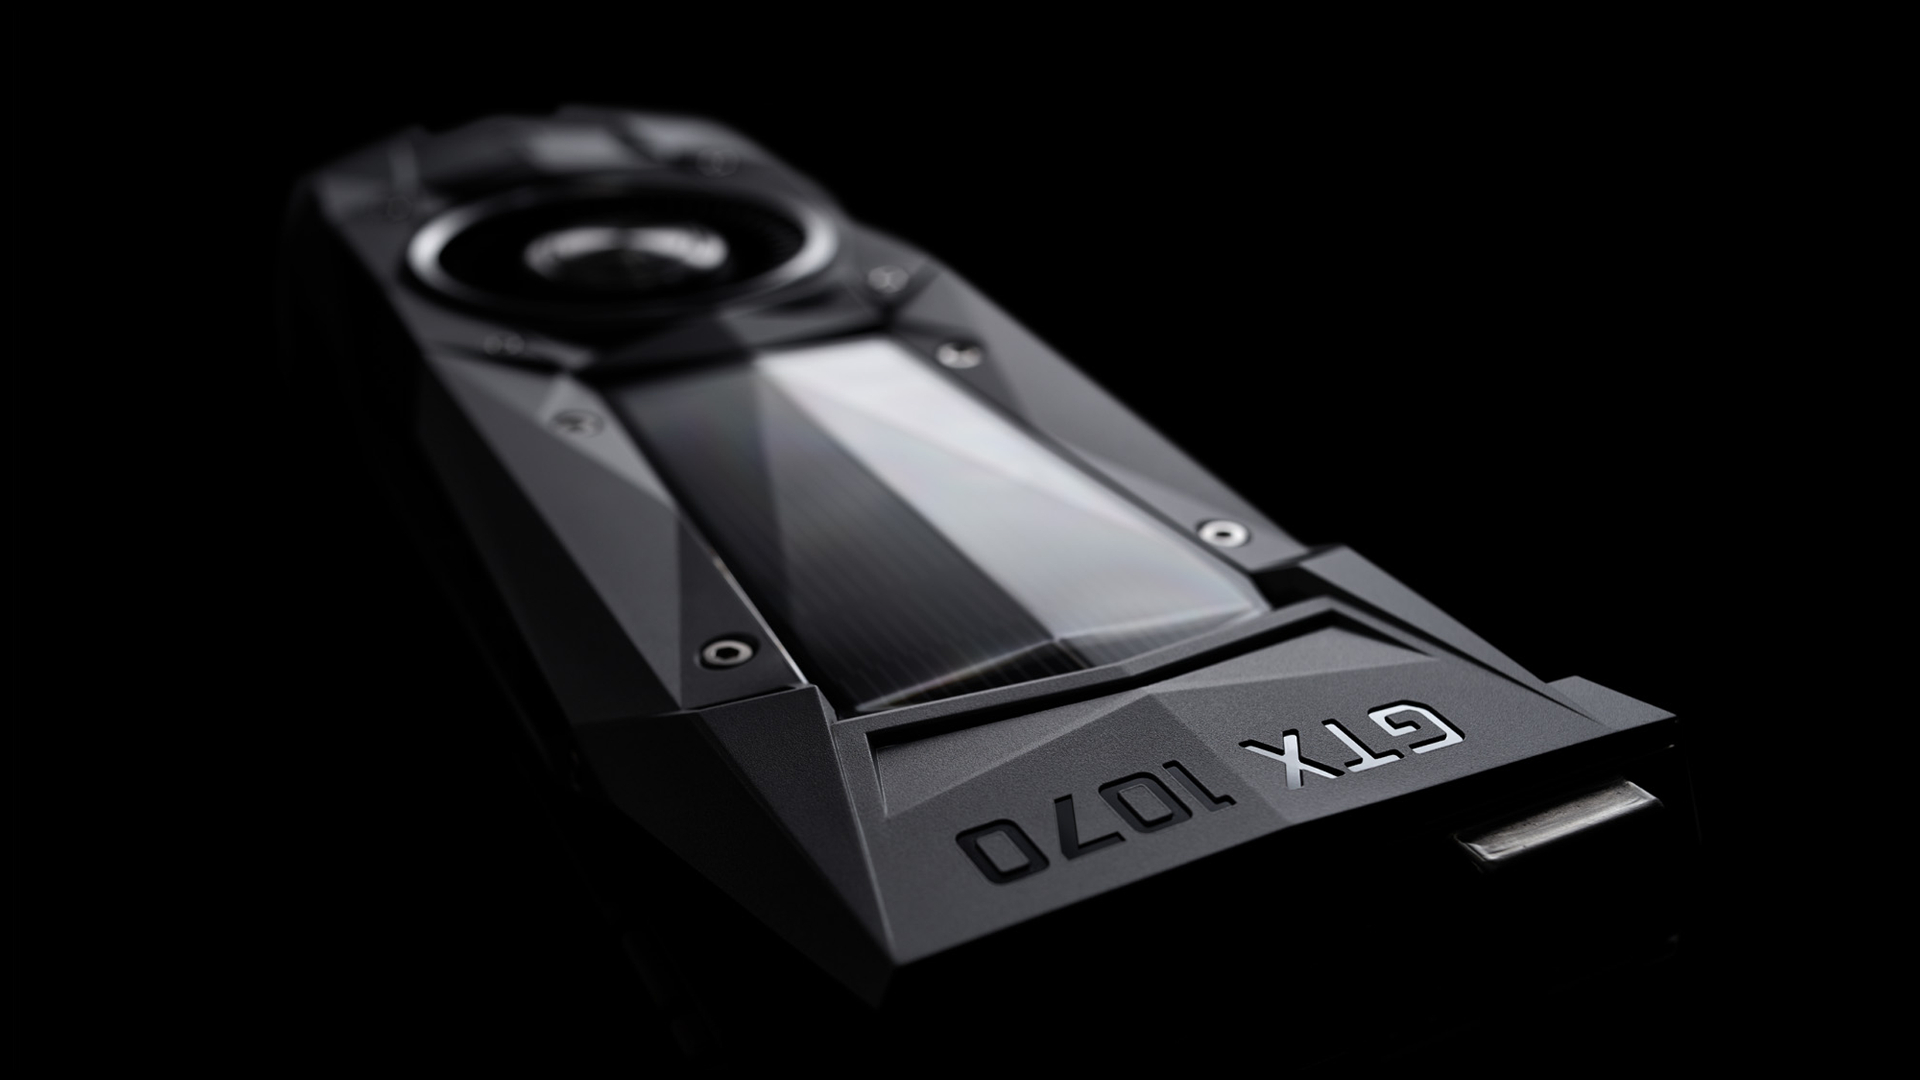 The Nvidia GeForce GTX 1070 graphics card